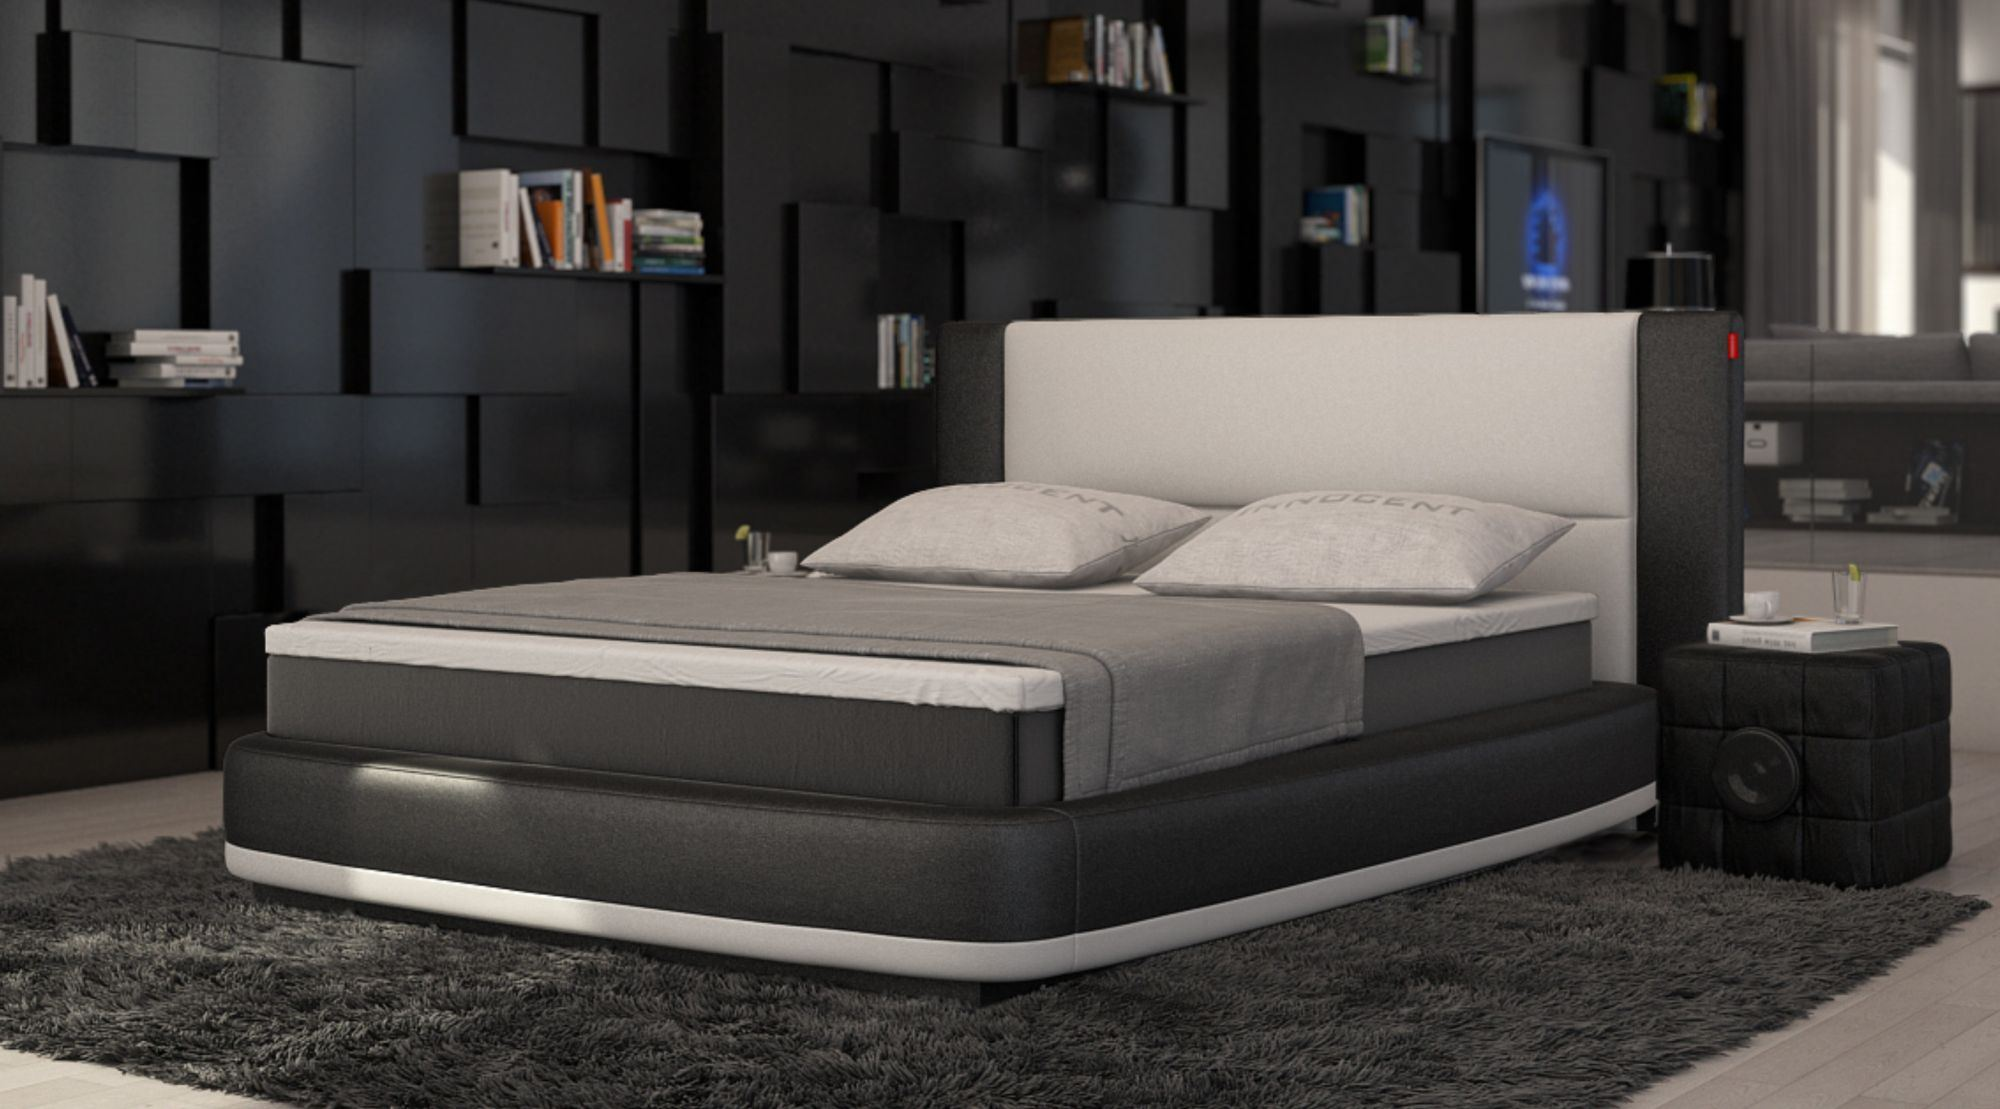 box spring bed aquila design upholstered bed designerbett two colour. Black Bedroom Furniture Sets. Home Design Ideas